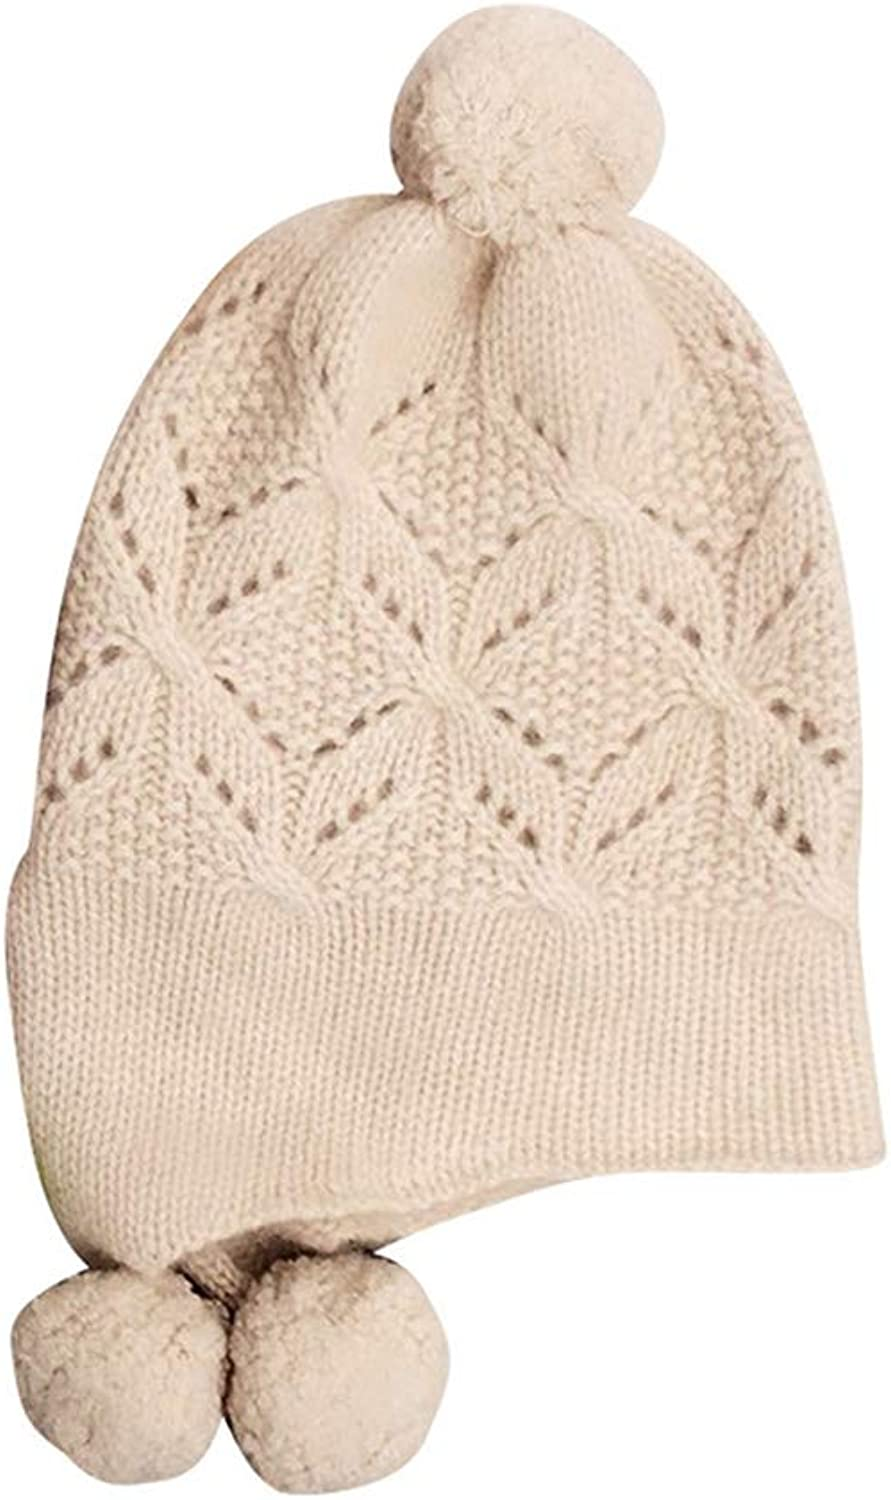 Balaclavas Hat Female Cashmere hat Autumn Winter hat Warm Openwork hat Women's Knitted Headgear Solid color Warm hat (color   Beige, Size   30  25cm)